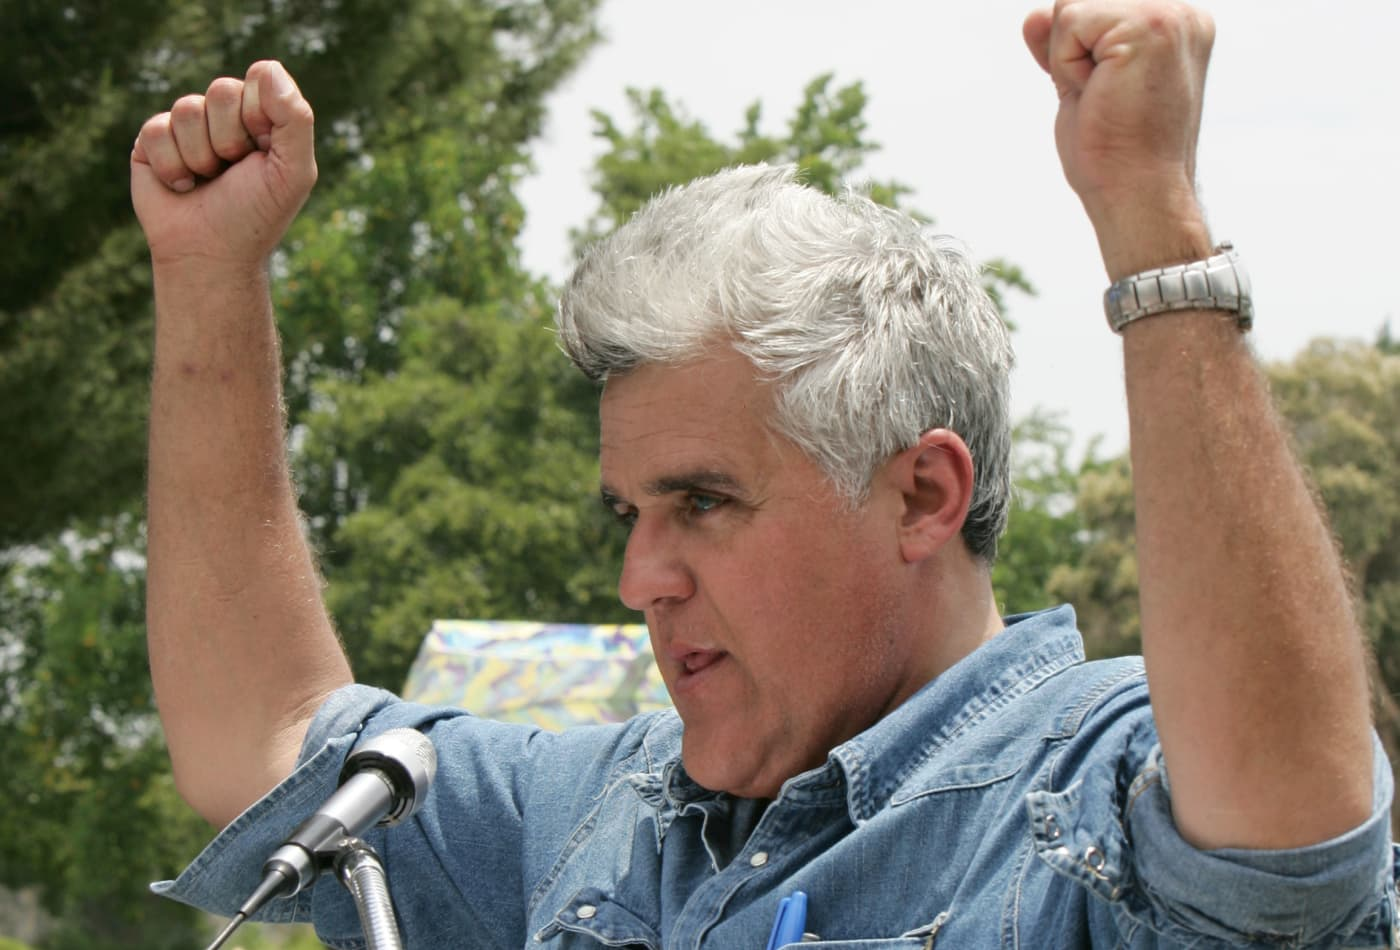 Jay Leno loves his Tesla: 'There's almost no reason to have a gas car'